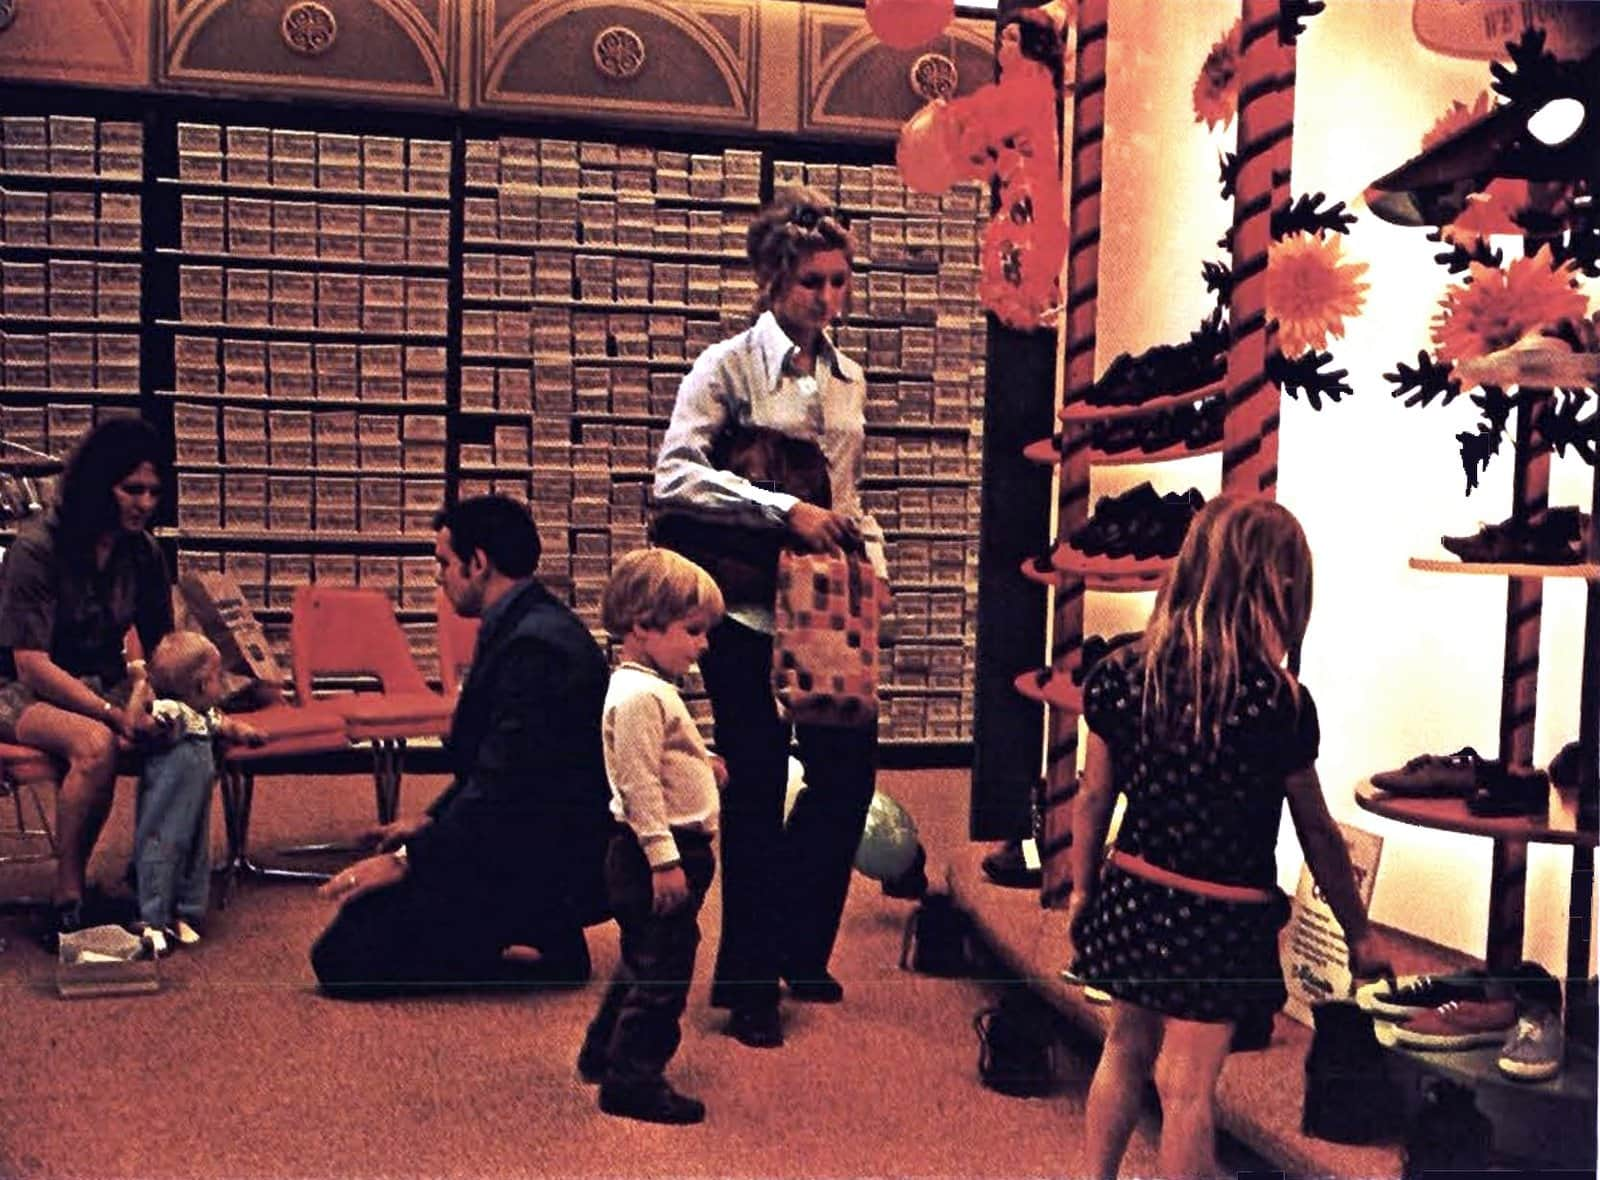 Shoe shopping with kids in 1970